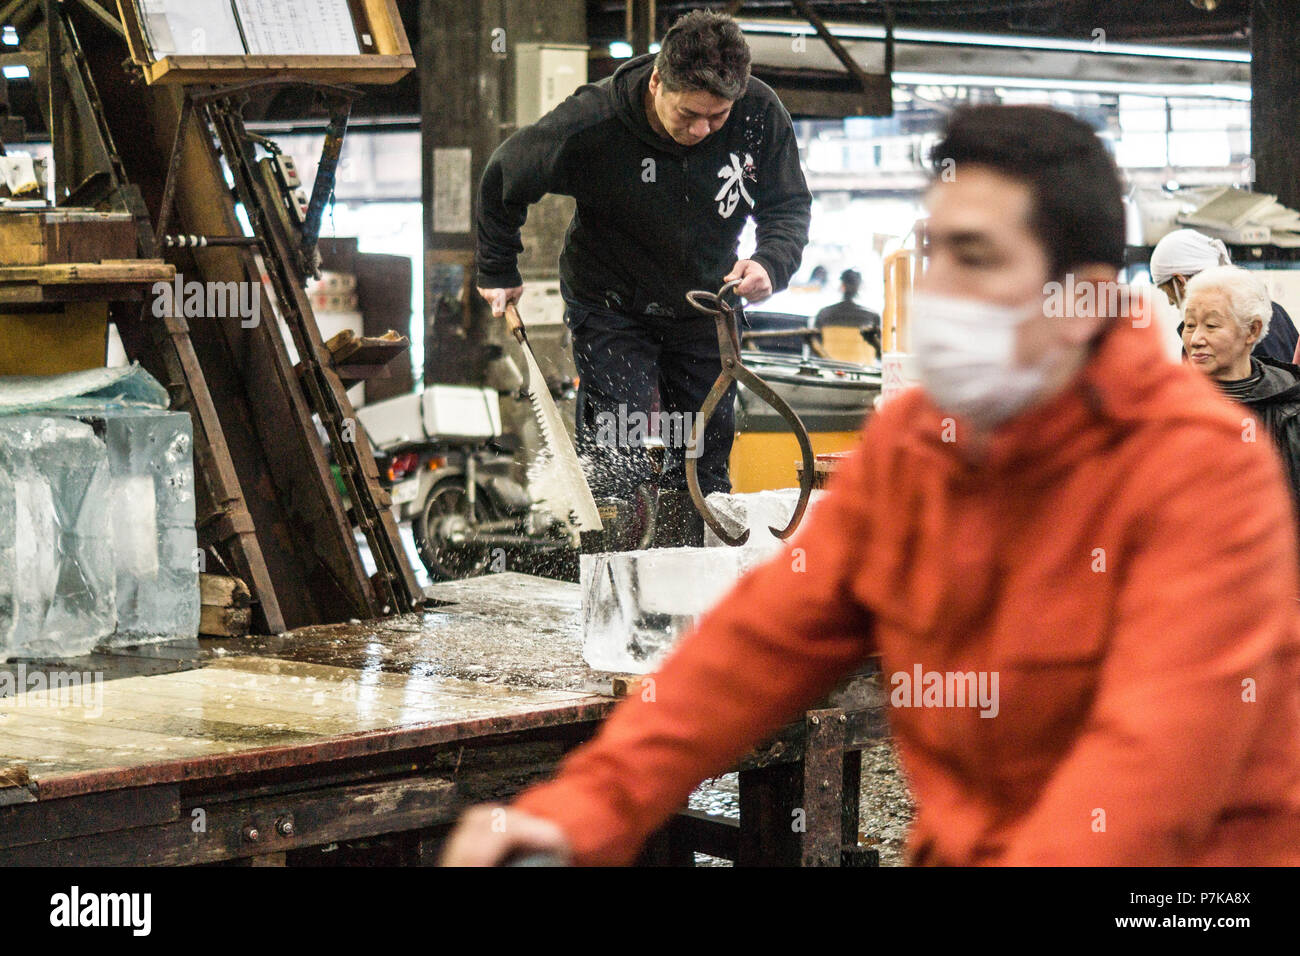 A worker at the fish market in Tokyo cuts a block of ice - Stock Image